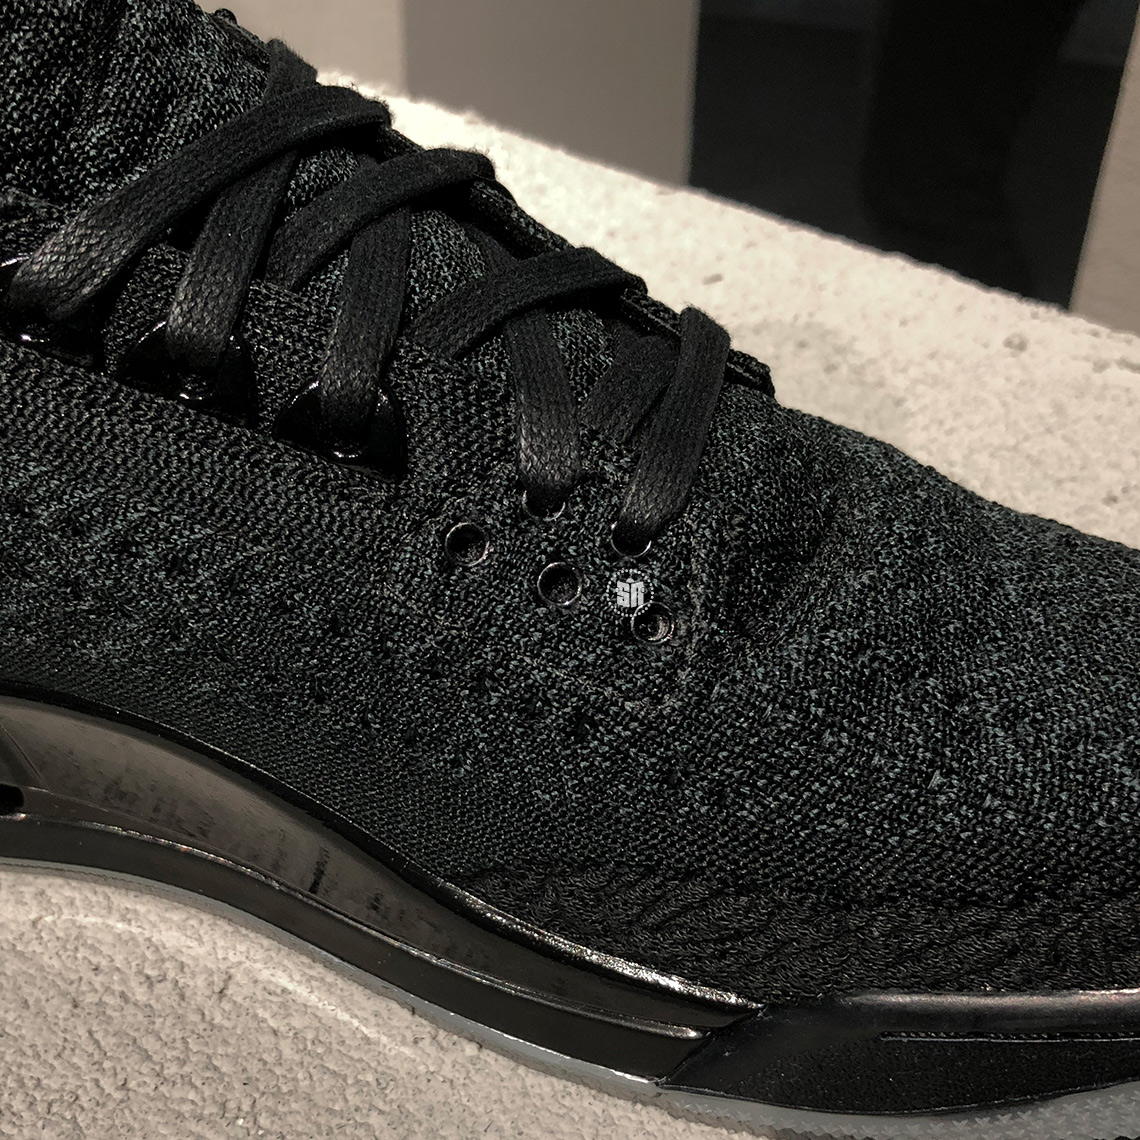 wholesale dealer d1009 3d341 Air Jordan 3 Flyknit - First Look | SneakerNews.com